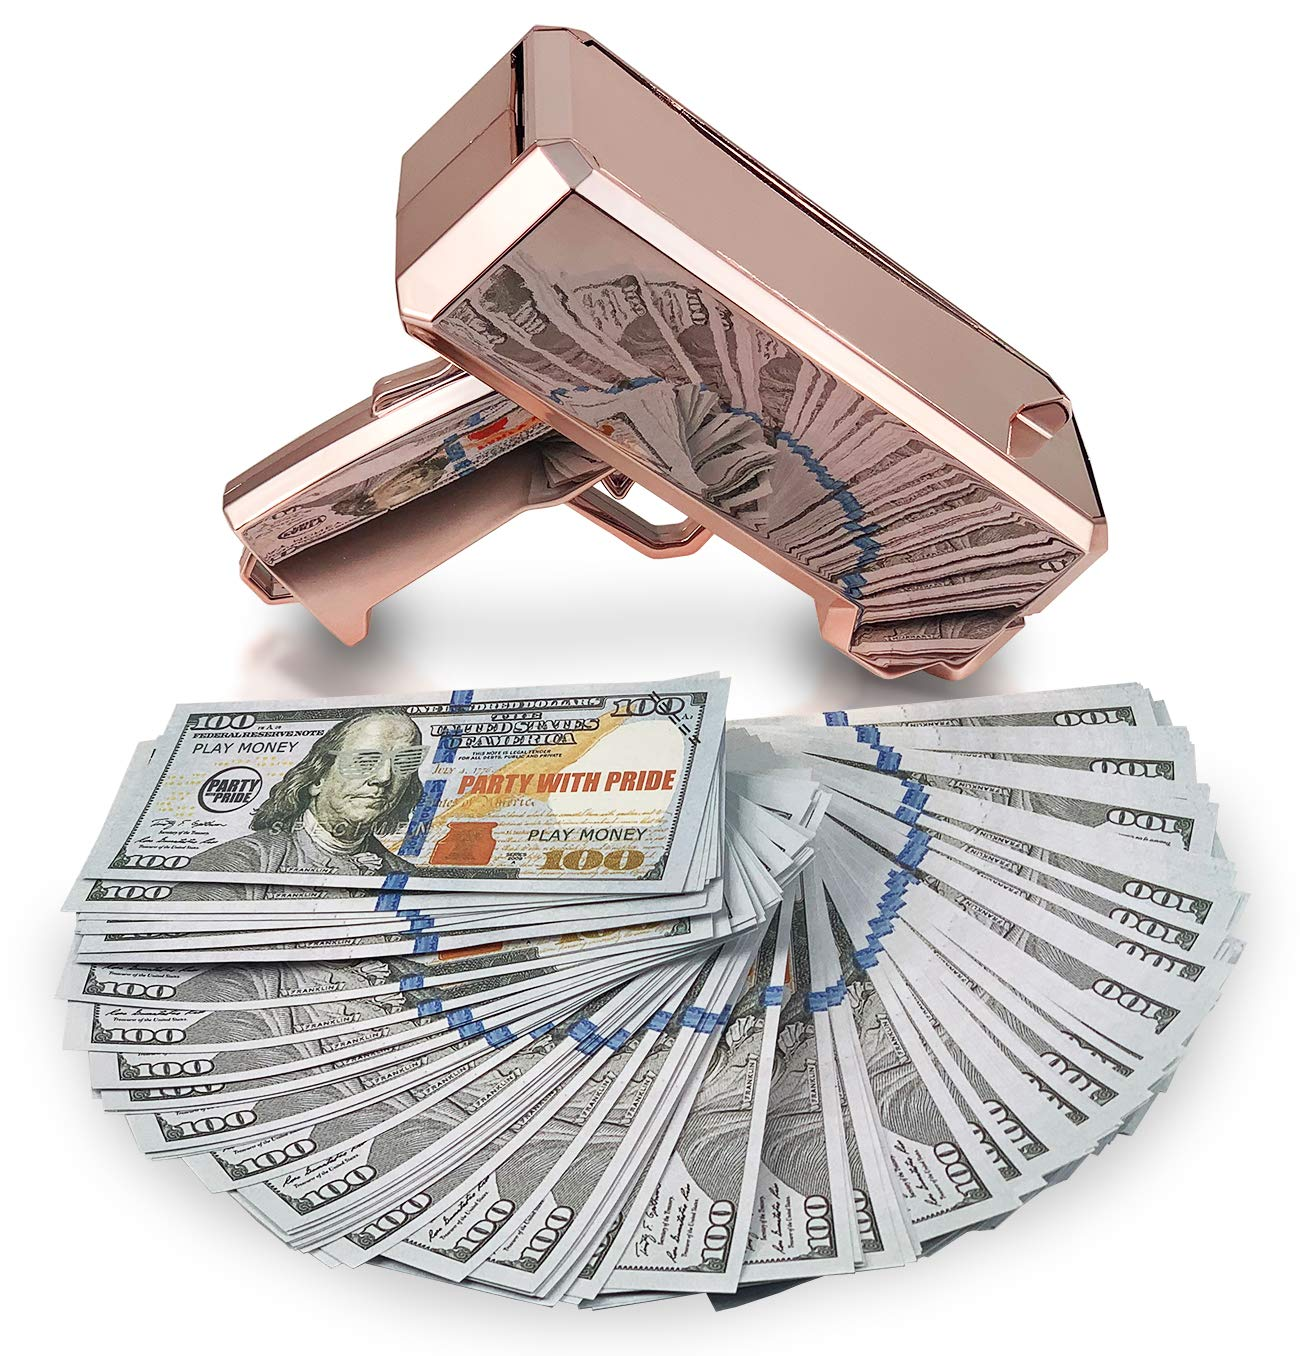 Party With Pride Money Gun, Real Electroplated Chrome Rose Gold, Rainmaker Handheld Cash Gun, Fake Bill Dispenser, Money Shooter (Rose Gold No Logo) by Party With Pride